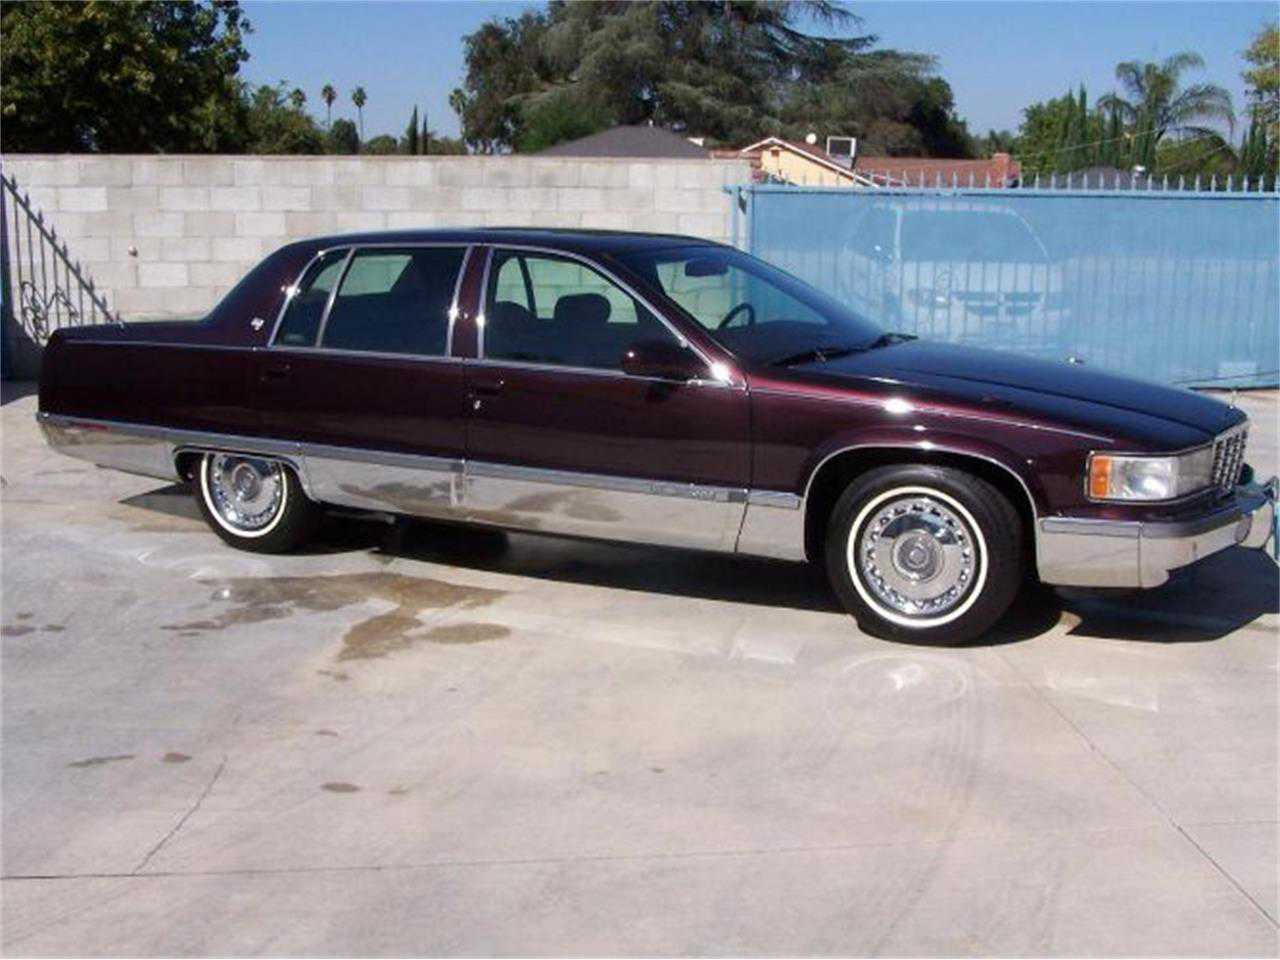 1995 cadillac fleetwood for sale in ams19478 1995 cadillac fleetwood for sale in